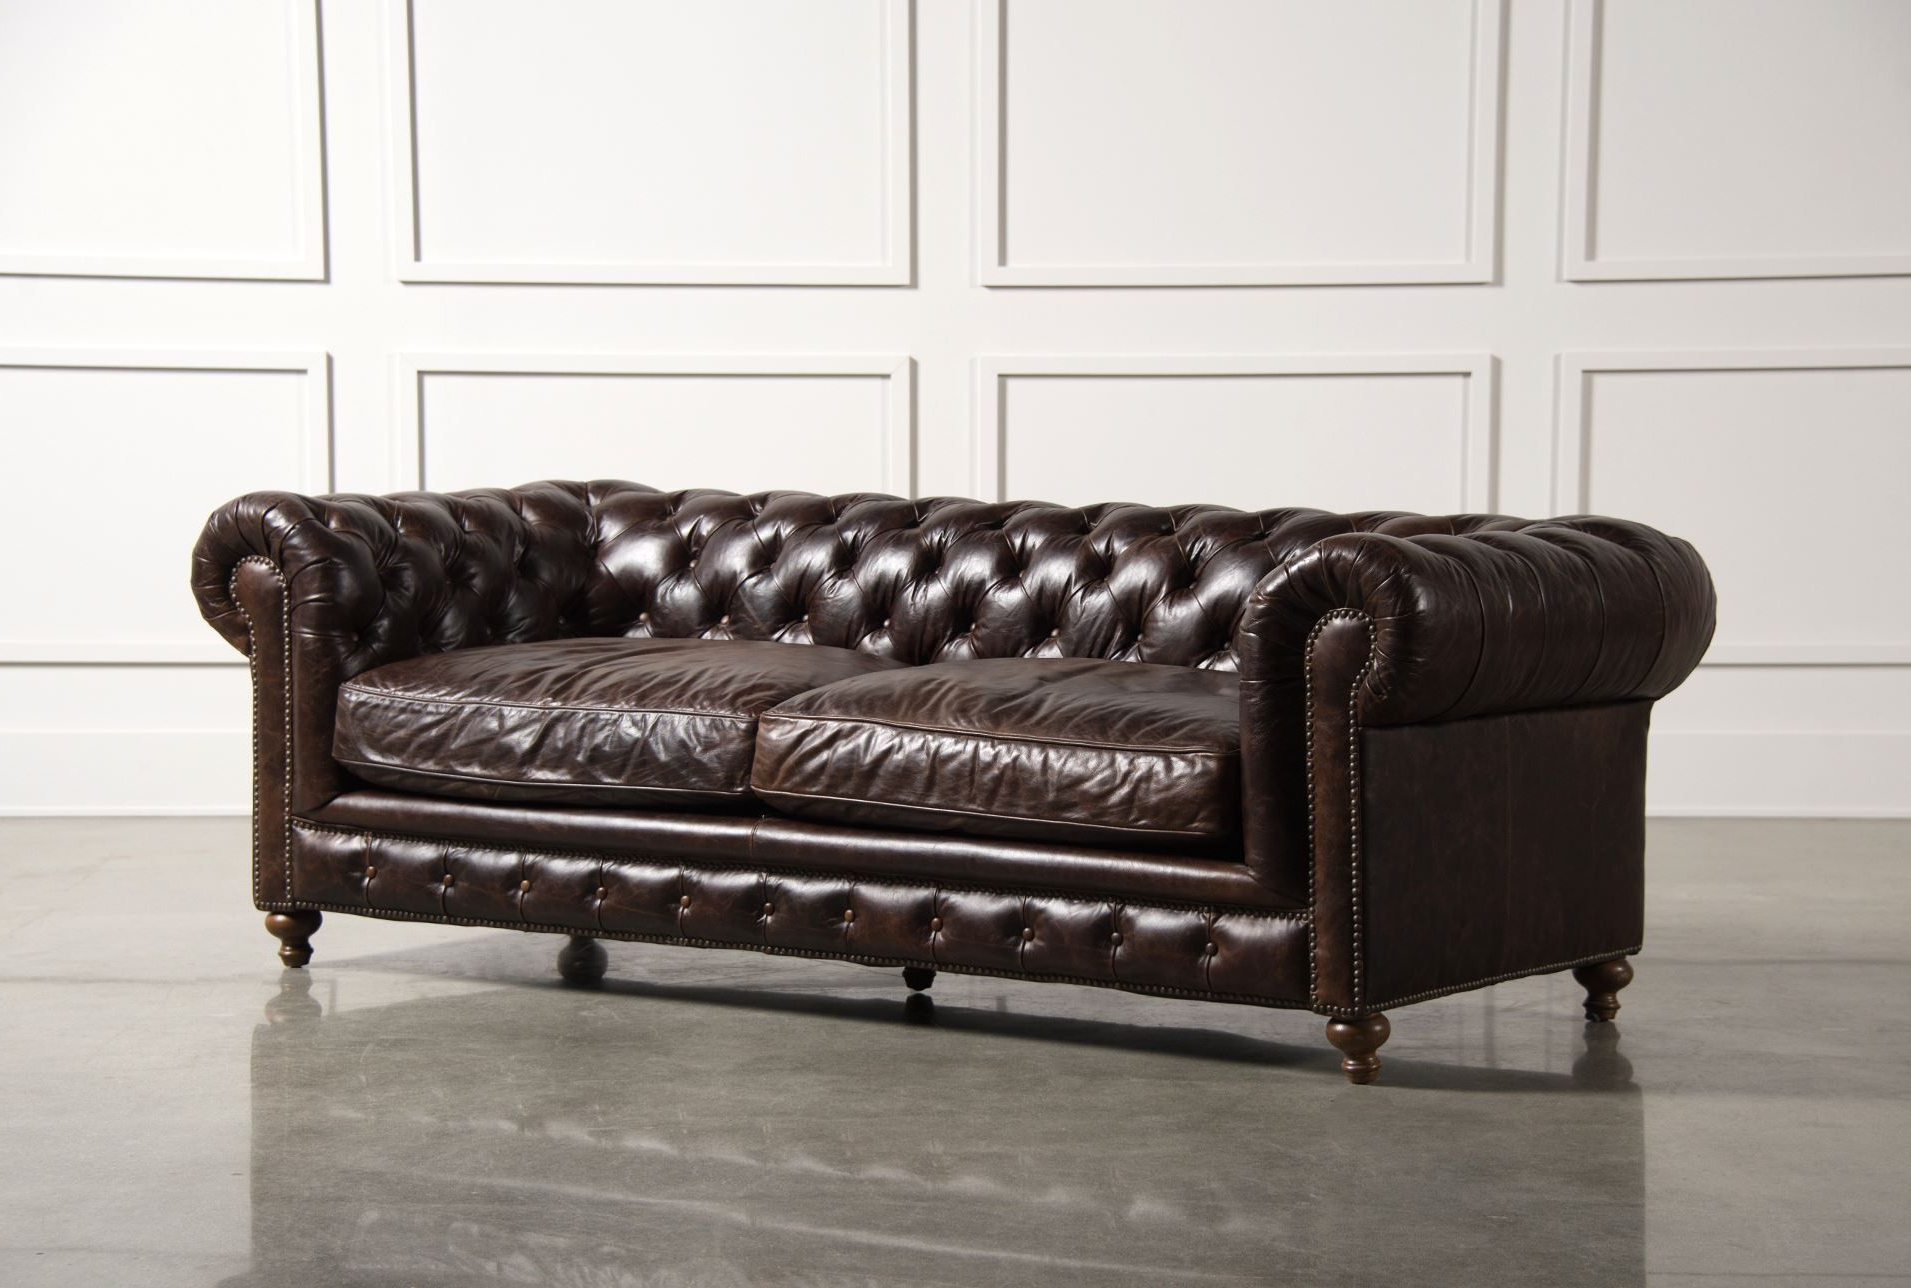 2019 Winthrop Sofa The Classic Lines Of This Chesterfield Sofa Is One Within Mansfield Graphite Velvet Sofa Chairs (View 4 of 20)